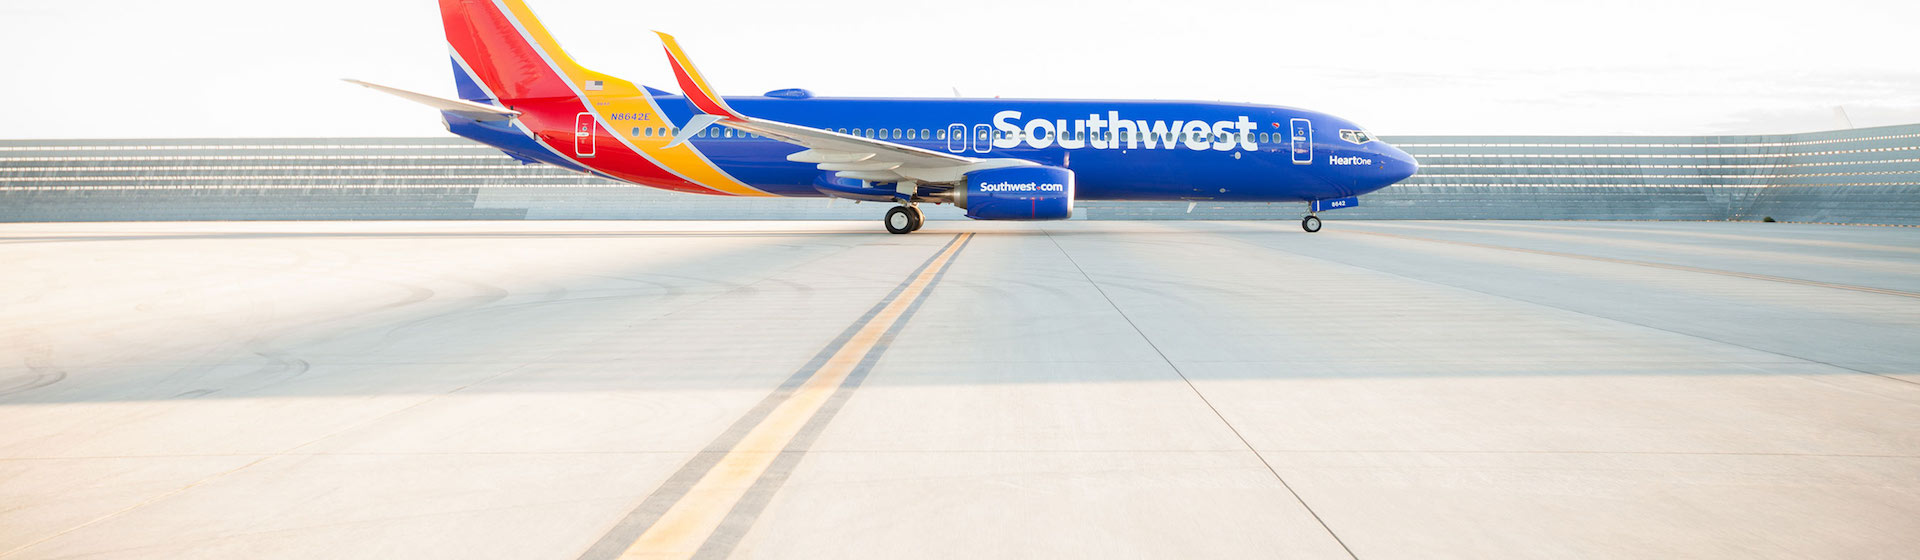 Sw airlines deals